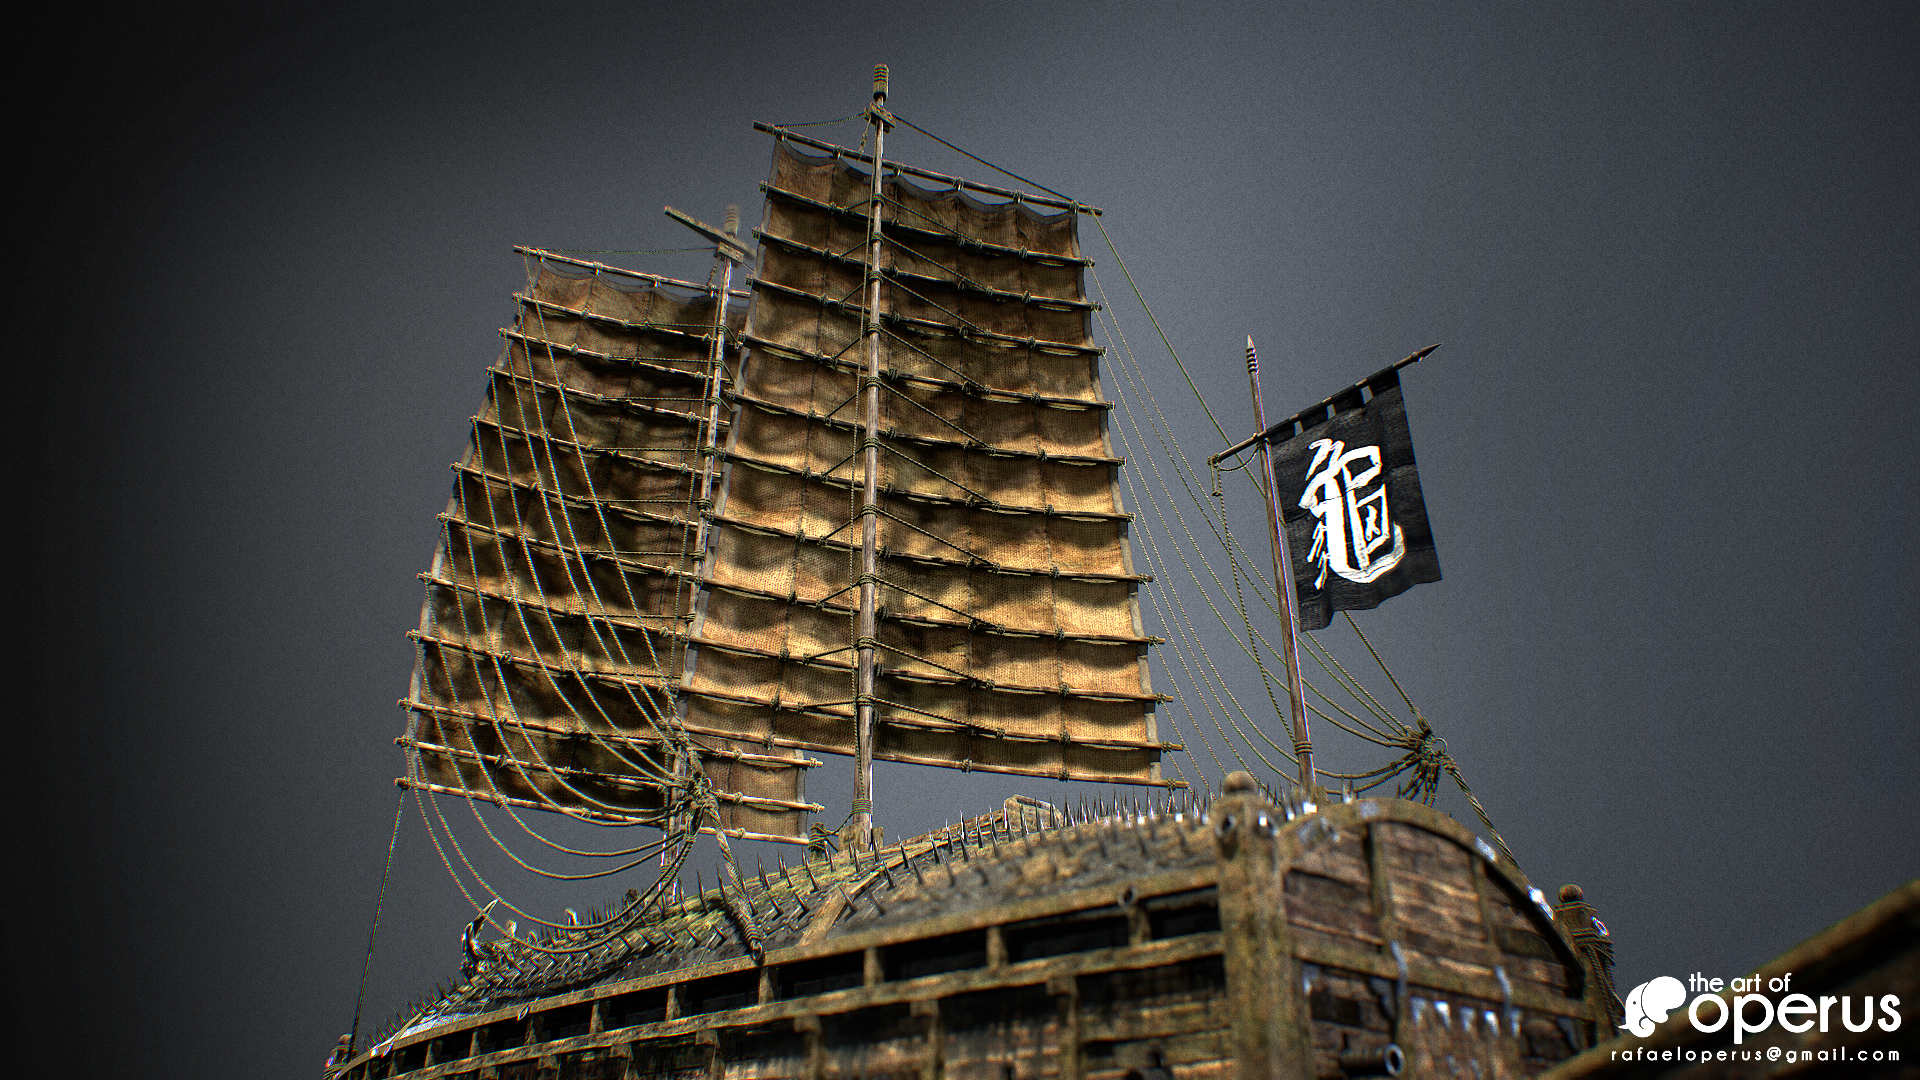 Turtle Ship Parts Of A Tall For Pinterest